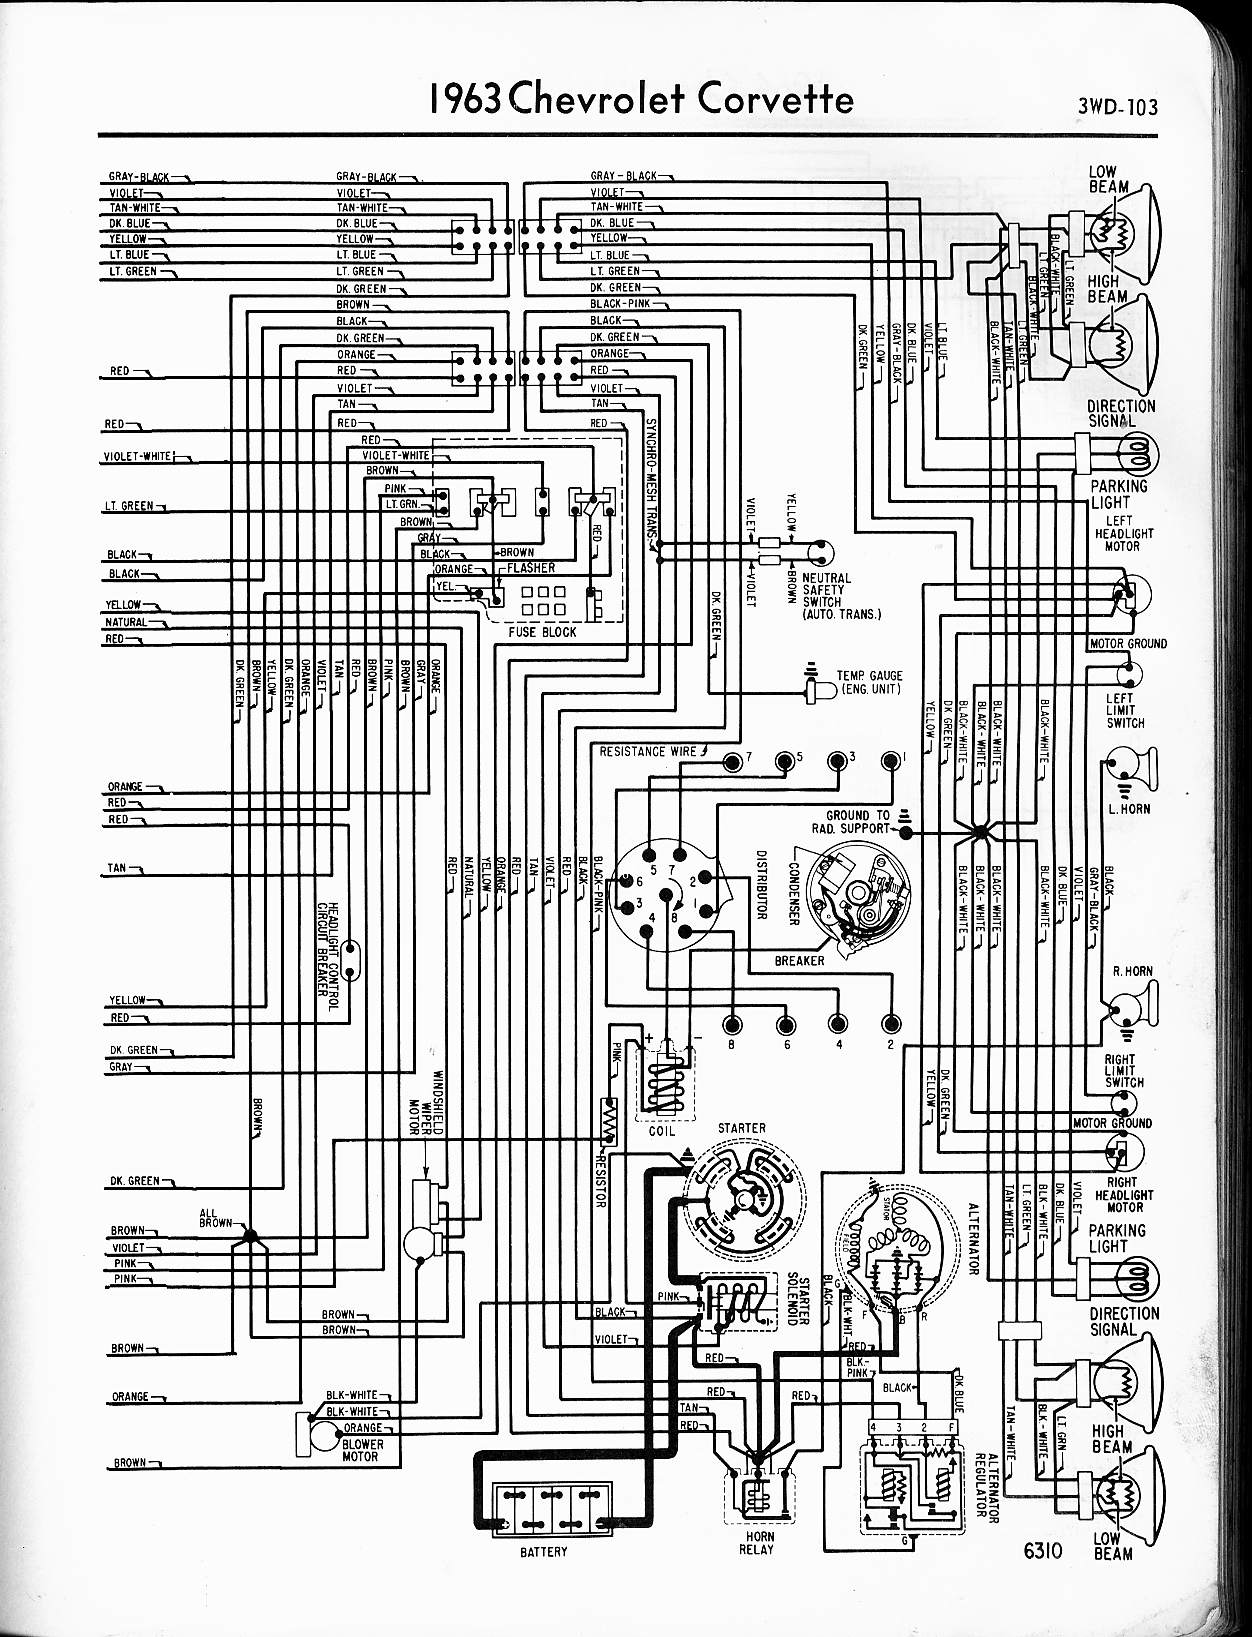 MWireChev63_3WD 103 57 65 chevy wiring diagrams 1971 corvette wiring diagram at honlapkeszites.co